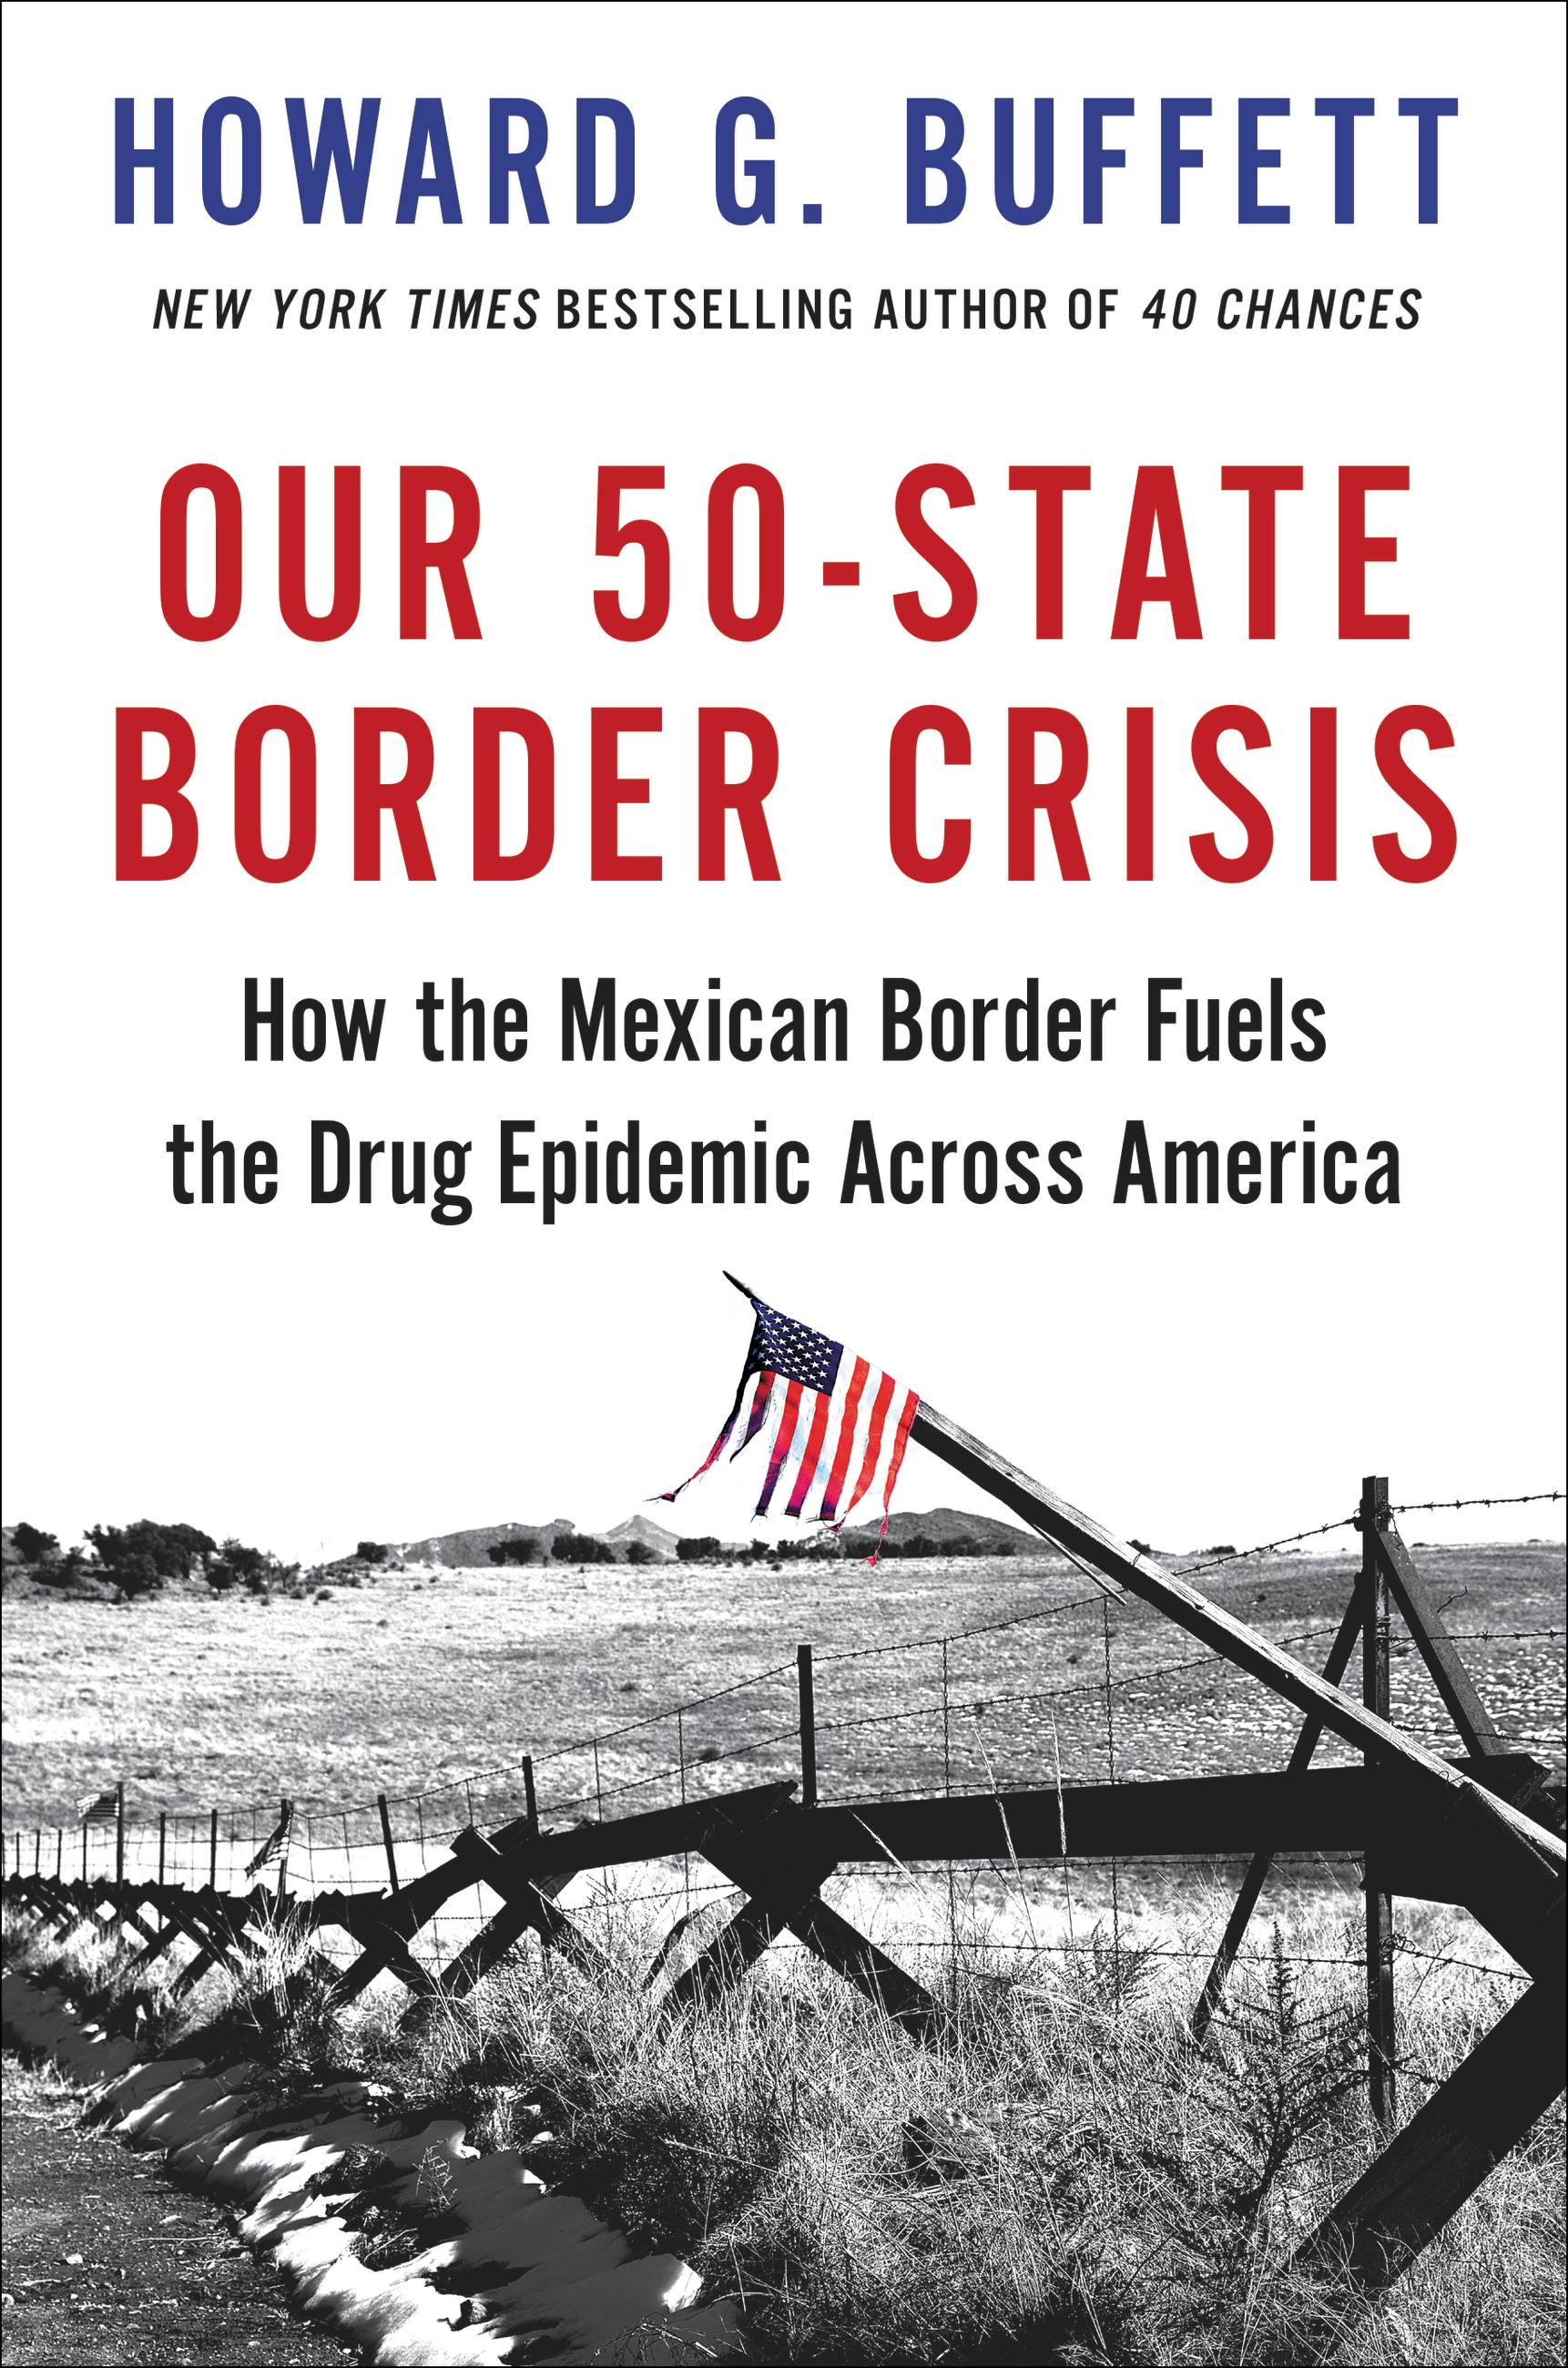 Our 50-State Border Crisis [EBOOK]: How the Mexican Border Fuels the Drug Epidemic Across America